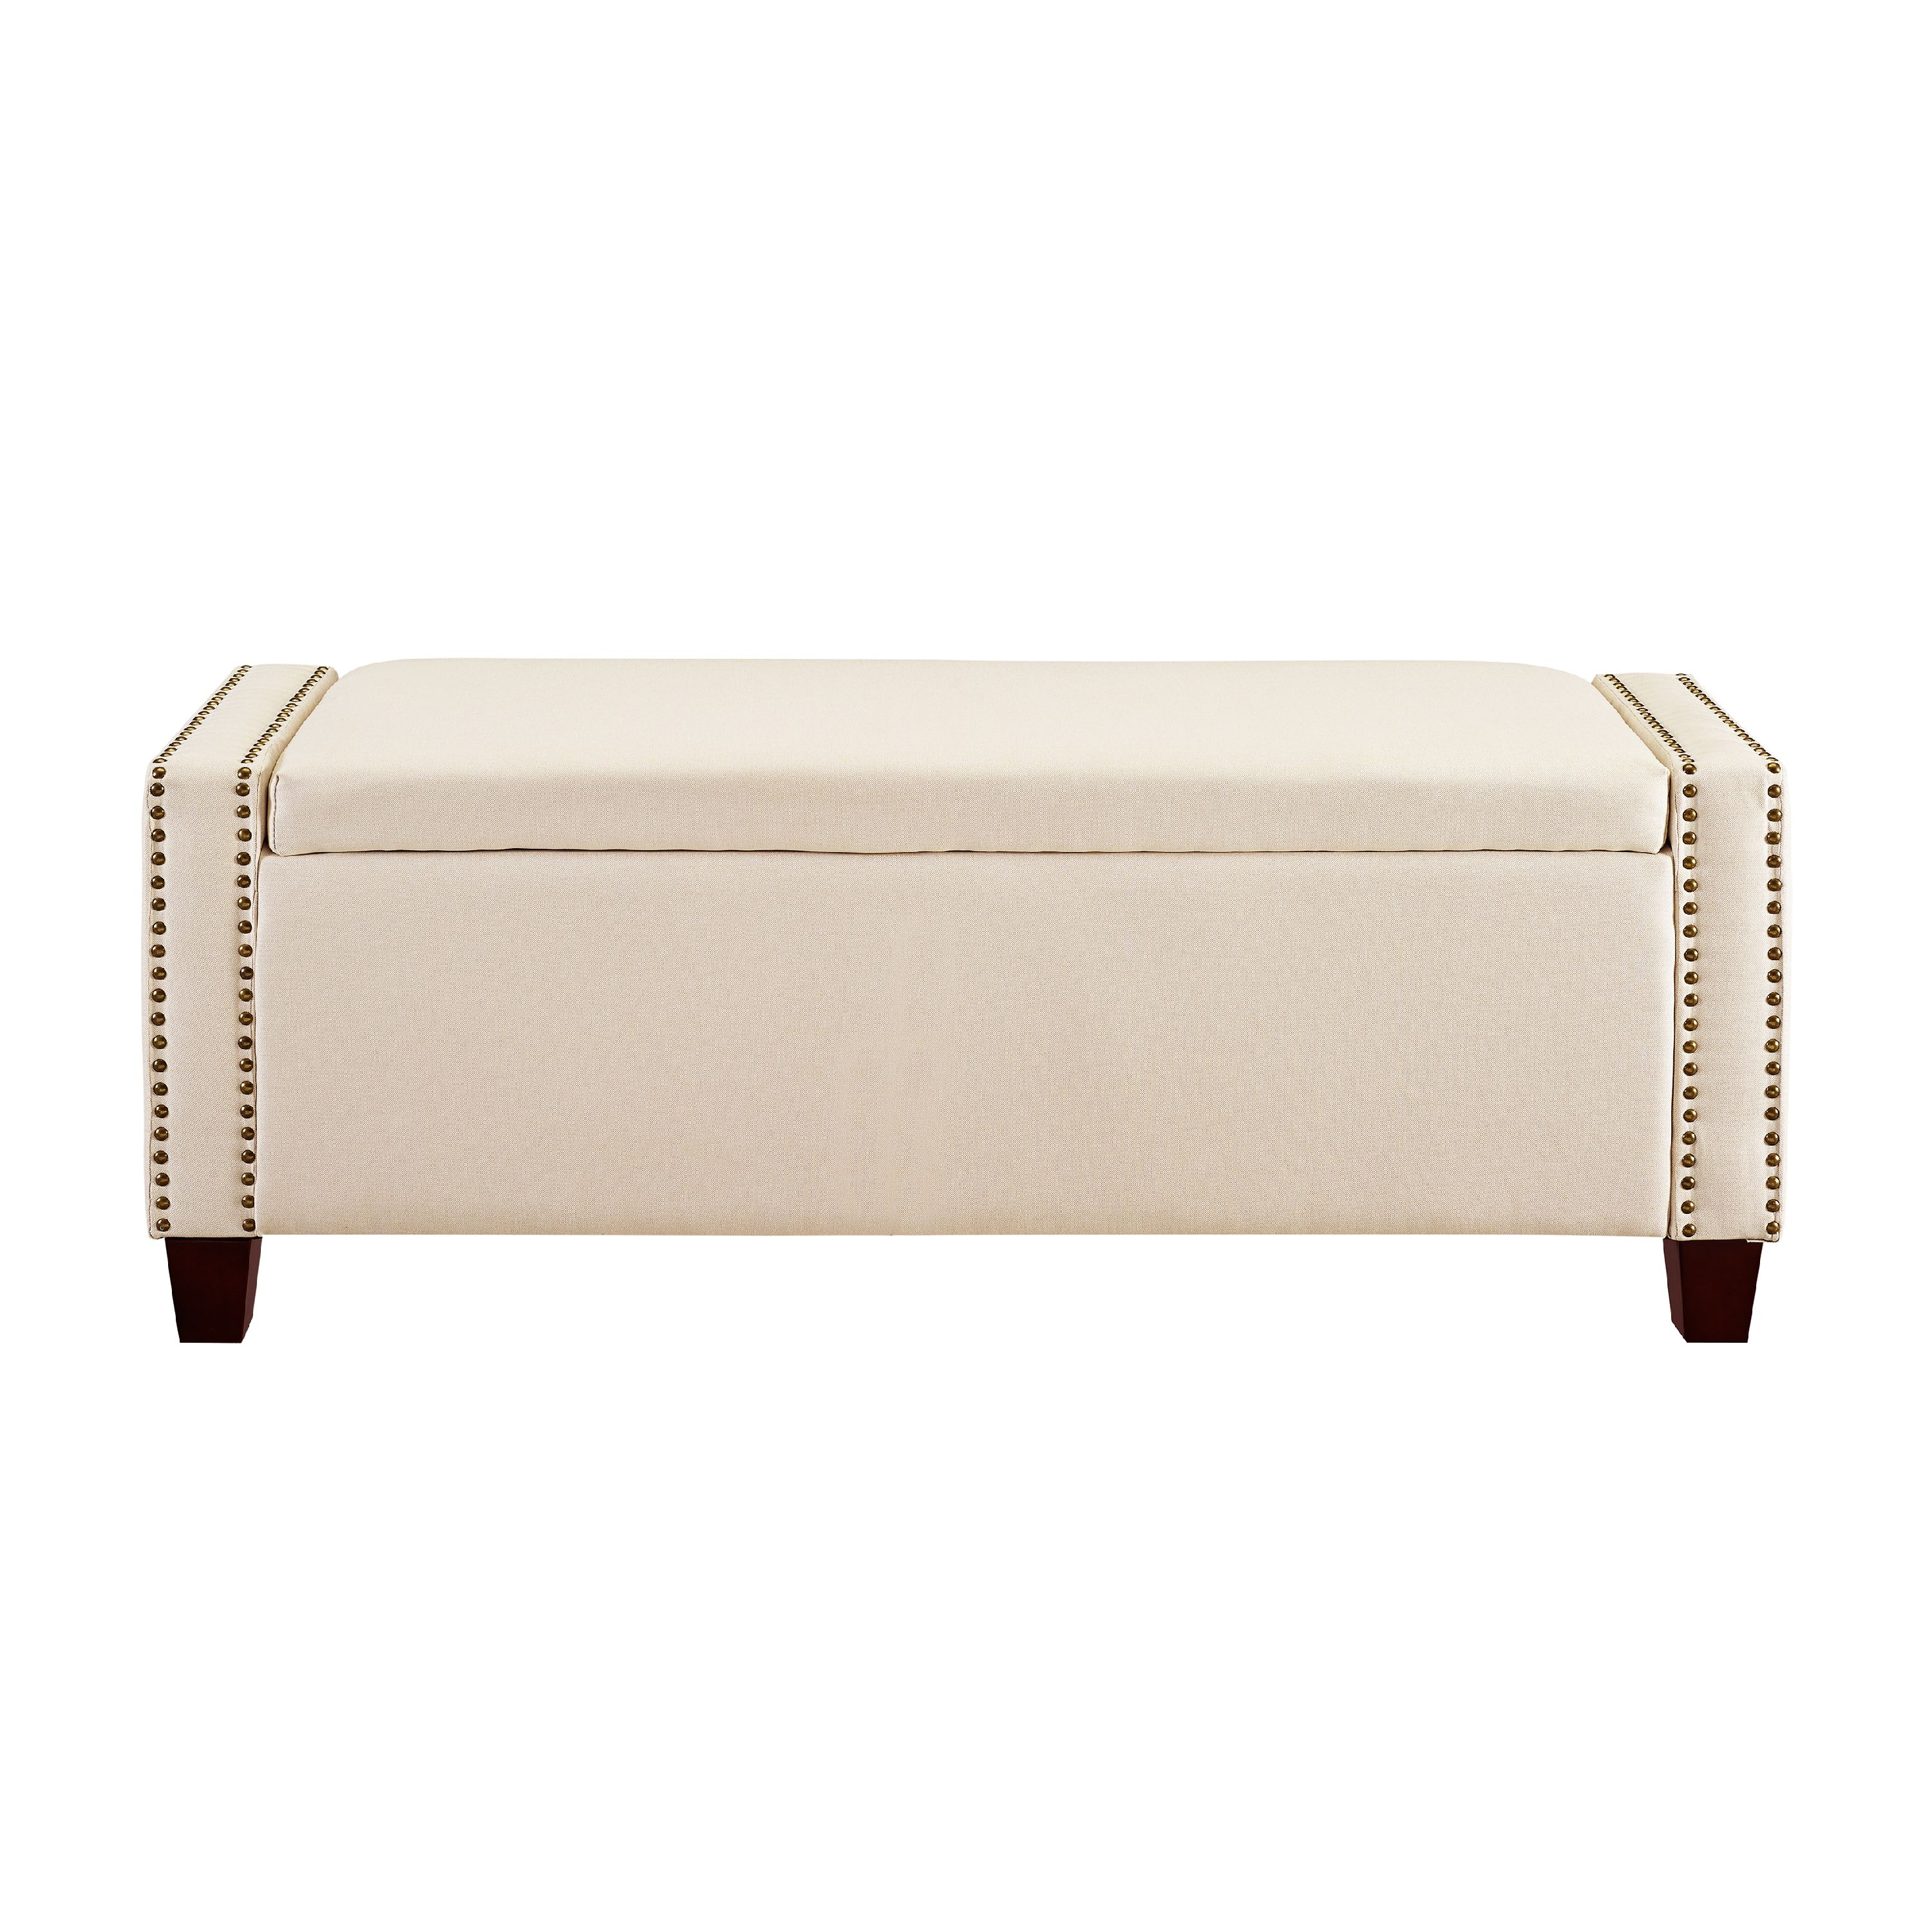 Bed End Storage Upholstered End Of Bed Storage Bench In Linen Beige